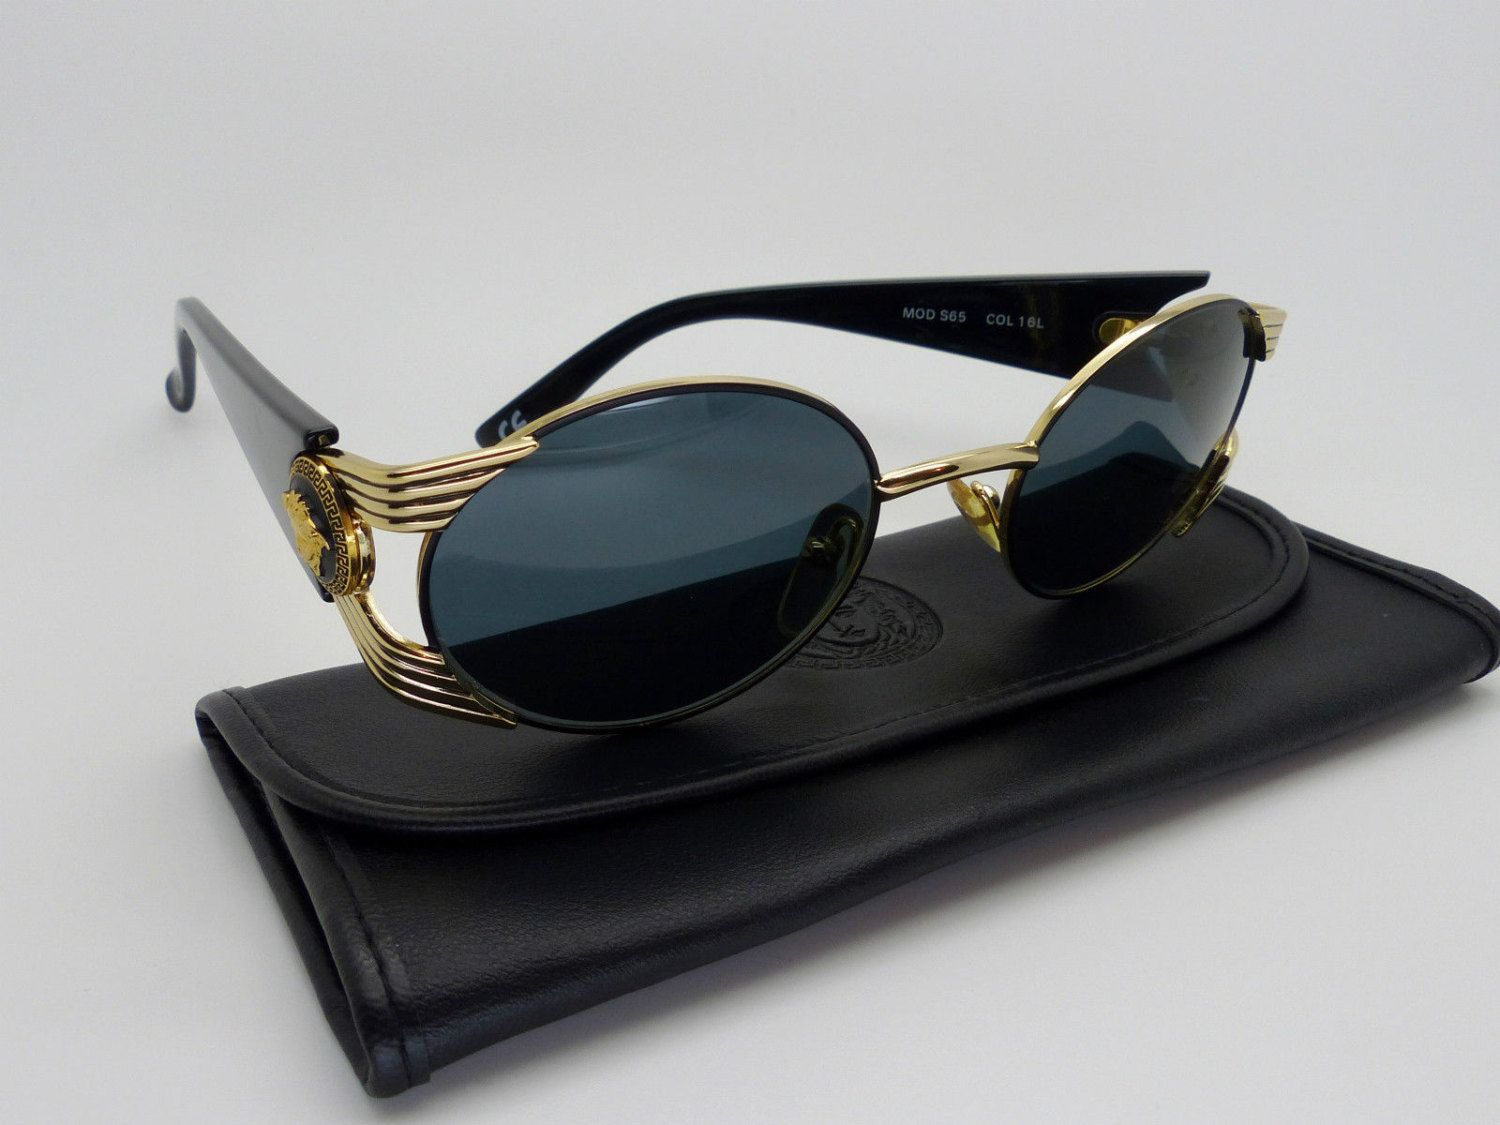 98eedbf590a Rare Vintage Gianni Versace Sunglasses Mod S65 Col 16L by VSOx on Etsy